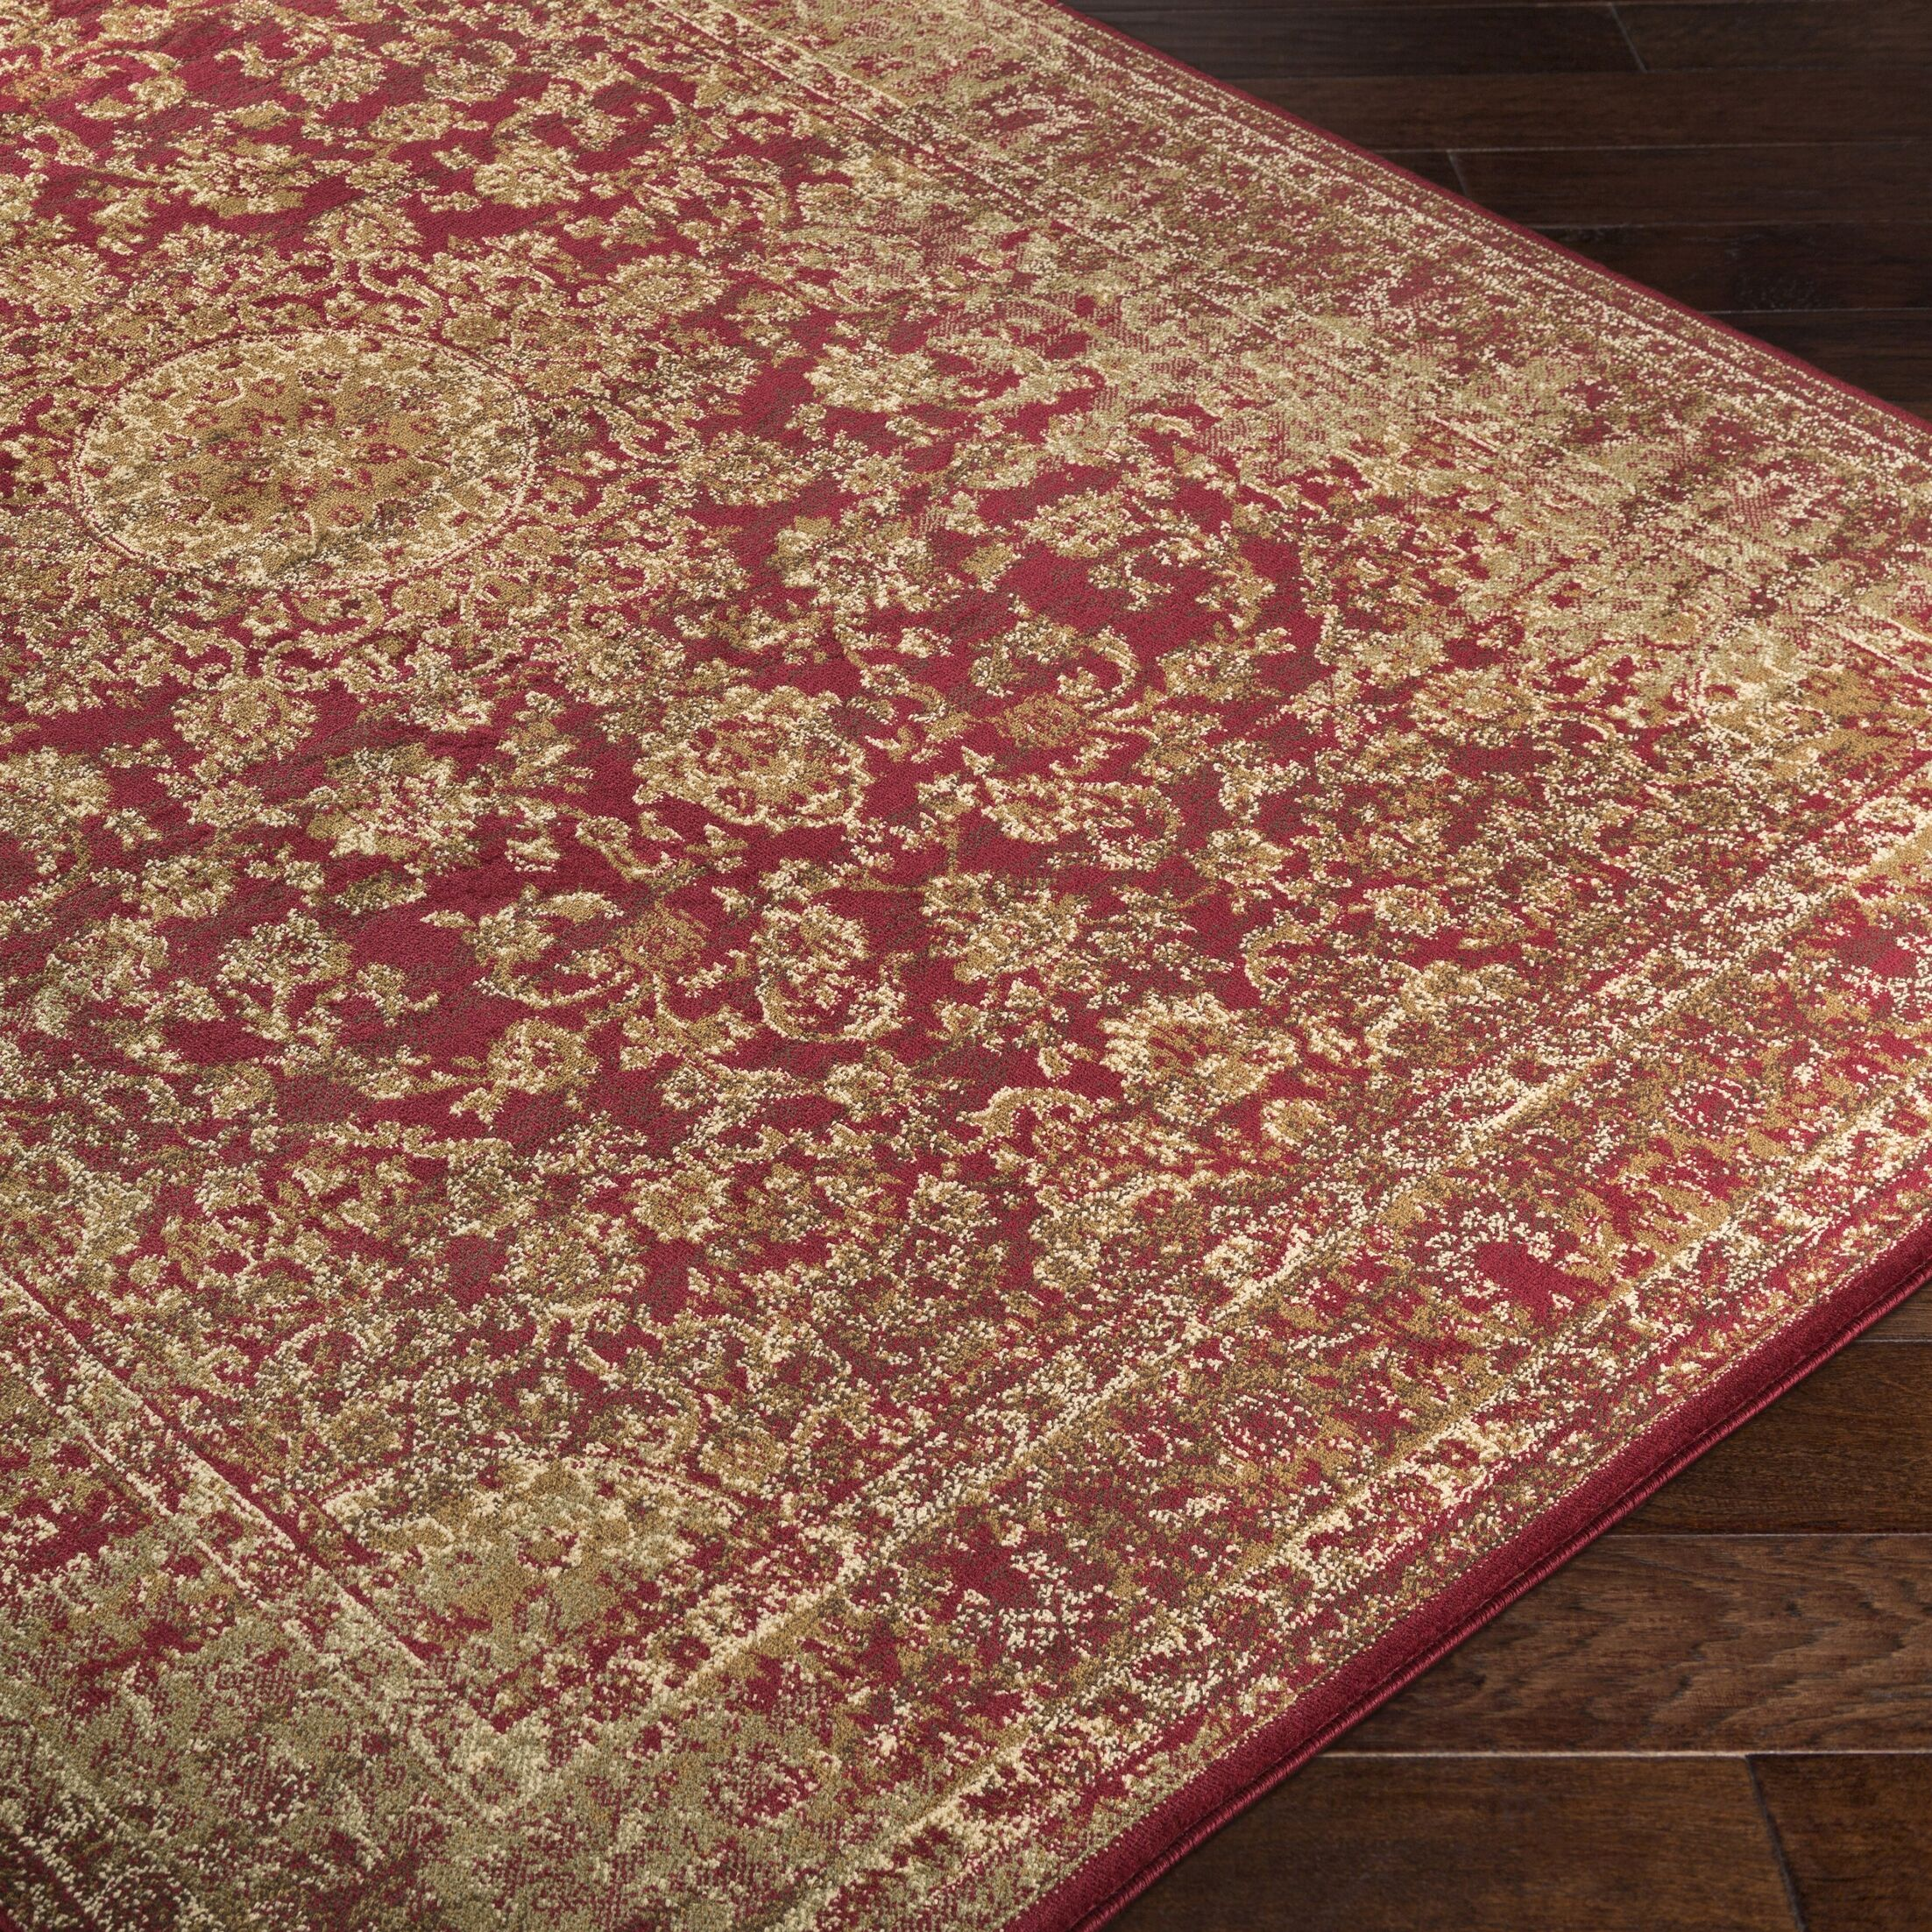 Netta Red/Brown Area Rug Rug Size: Rectangle 5' x 7'6